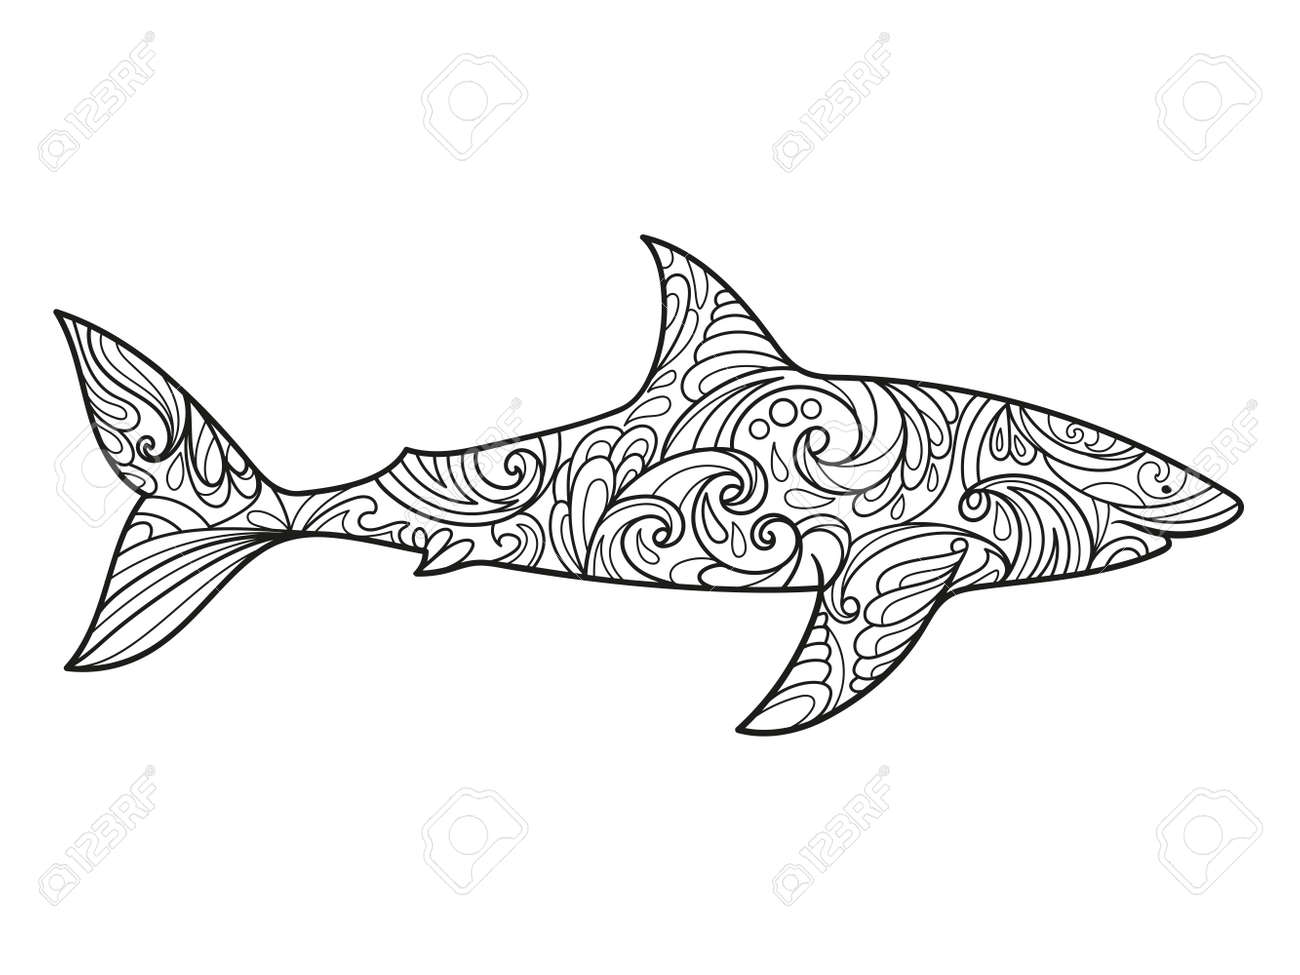 shark coloring book for adults illustration anti stress coloring